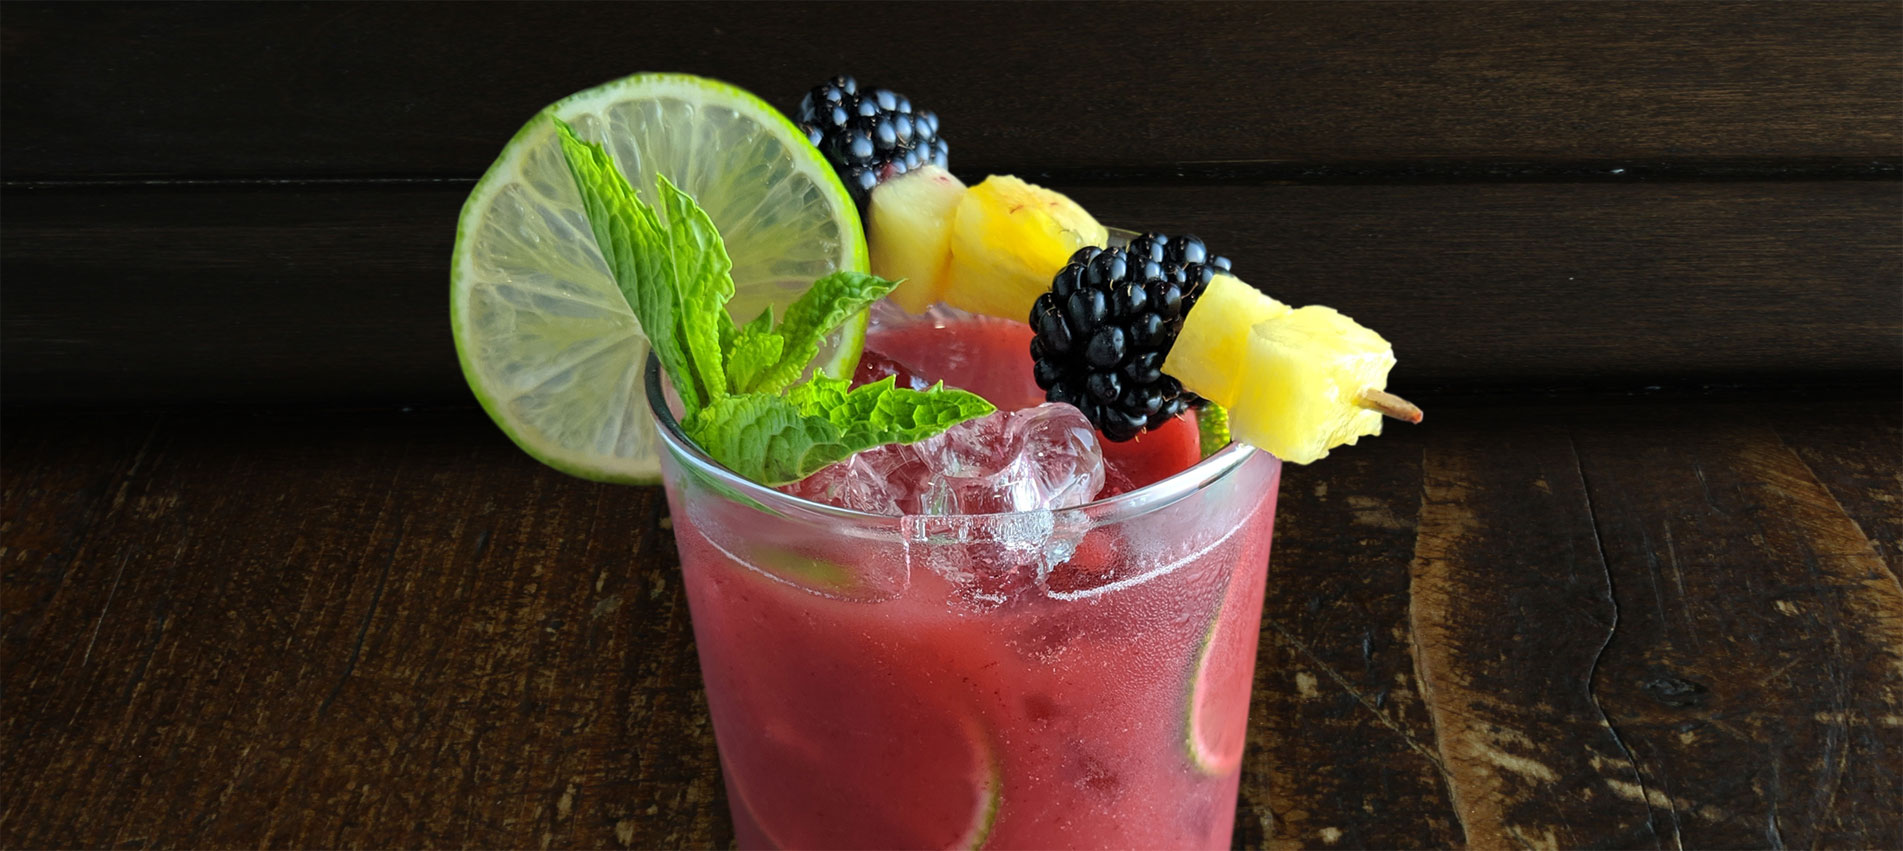 Featuring Haliburton's ready-to-use roasted pineapple and blackberry mixer and pickled pineapple garnish.